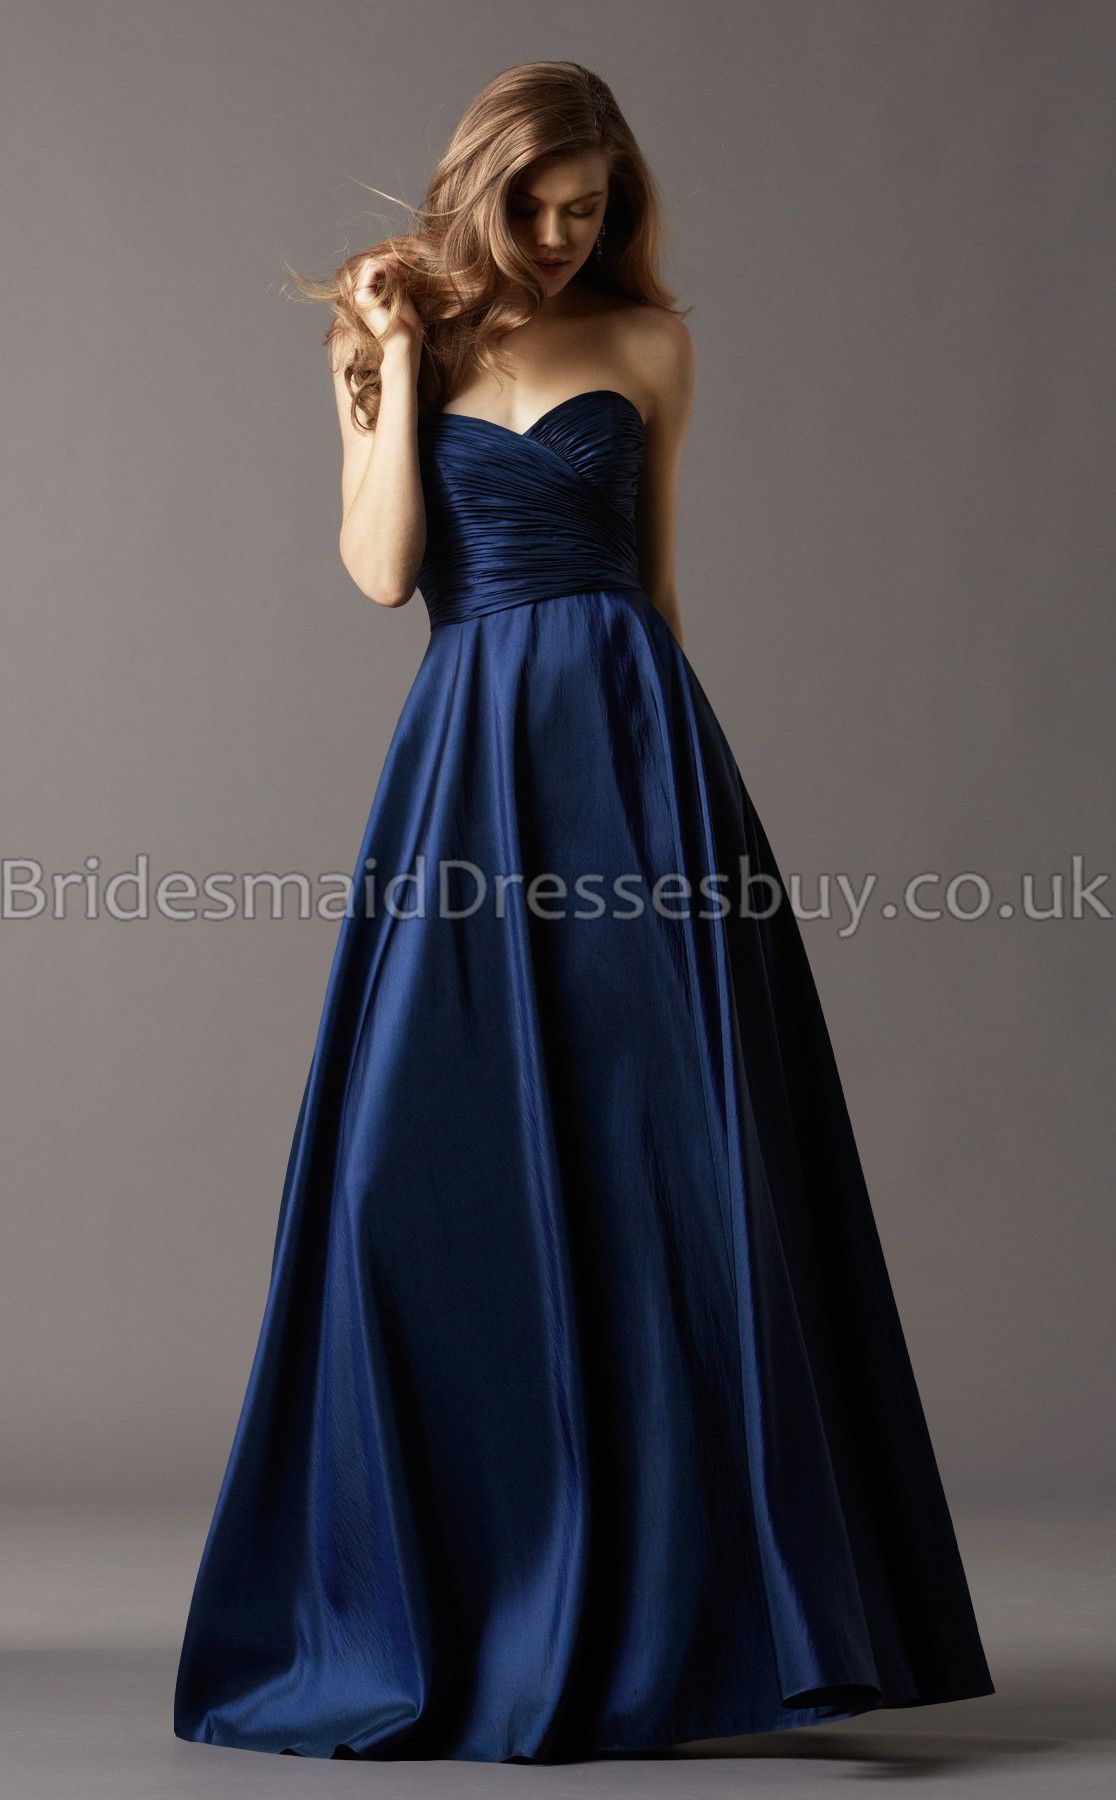 Navy blue long bridesmaid dressesblue bridesmaid dresses navy blue long bridesmaid dressesblue bridesmaid dresses ombrellifo Image collections